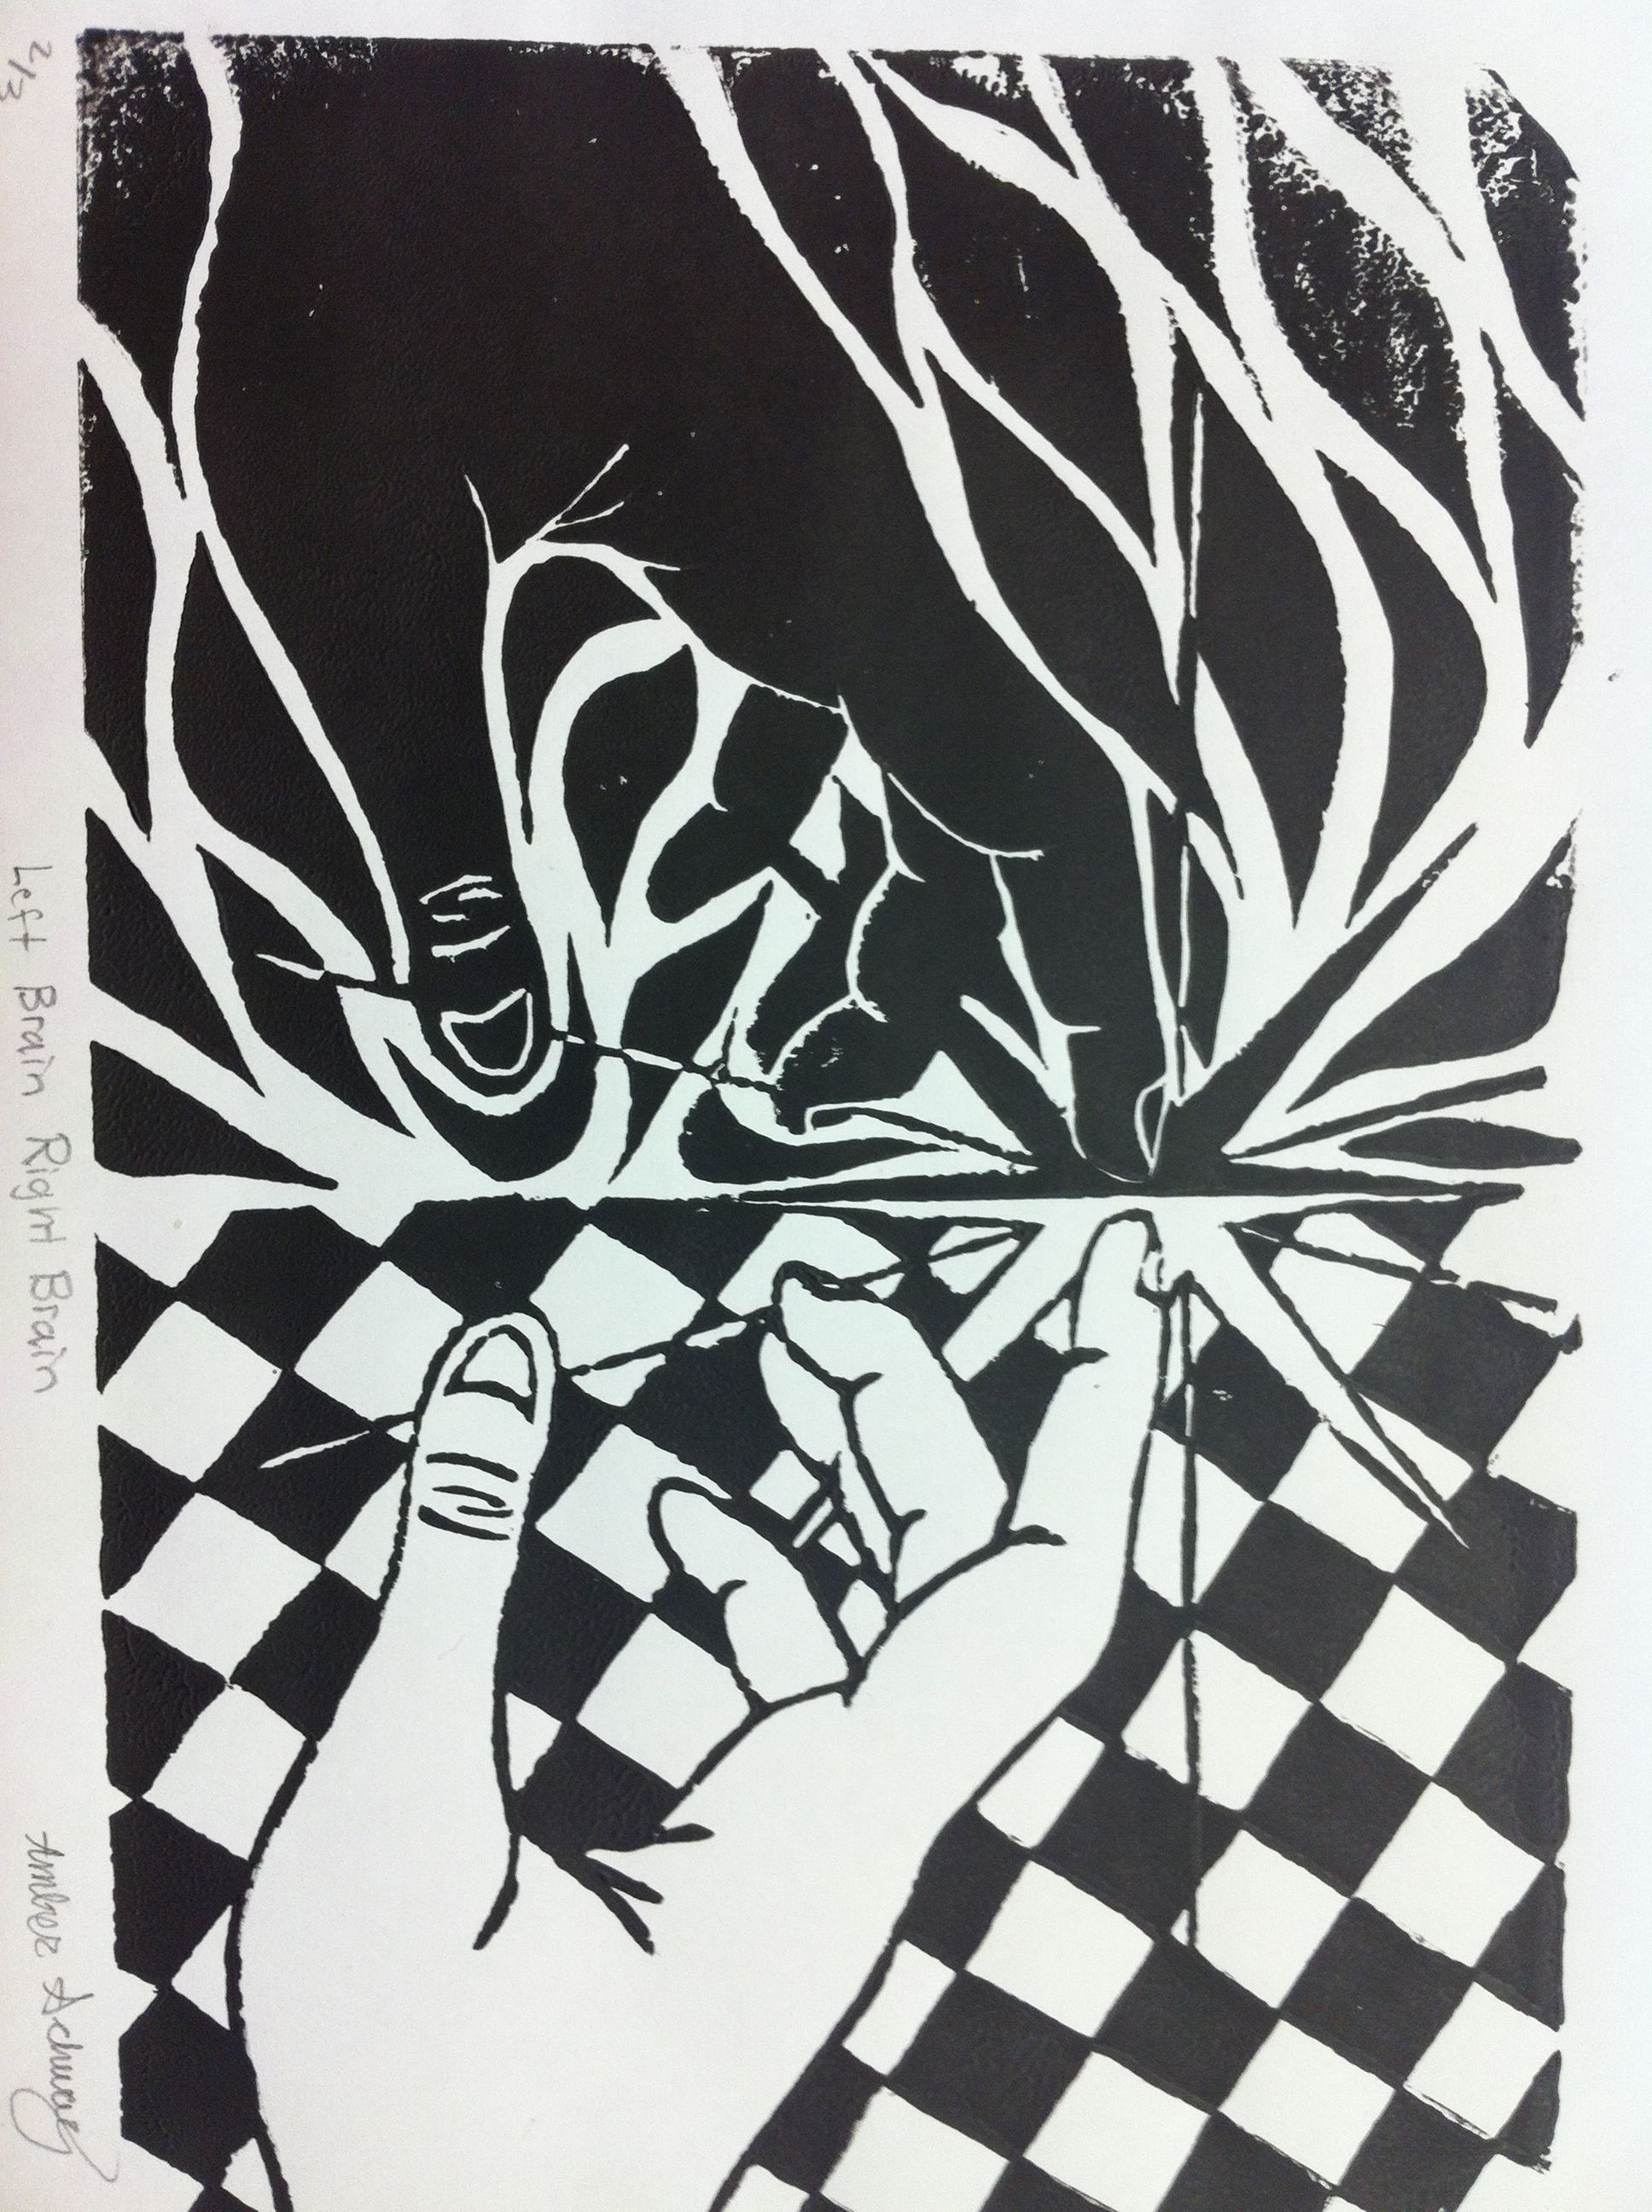 Symmetry prints using positive and negative space.